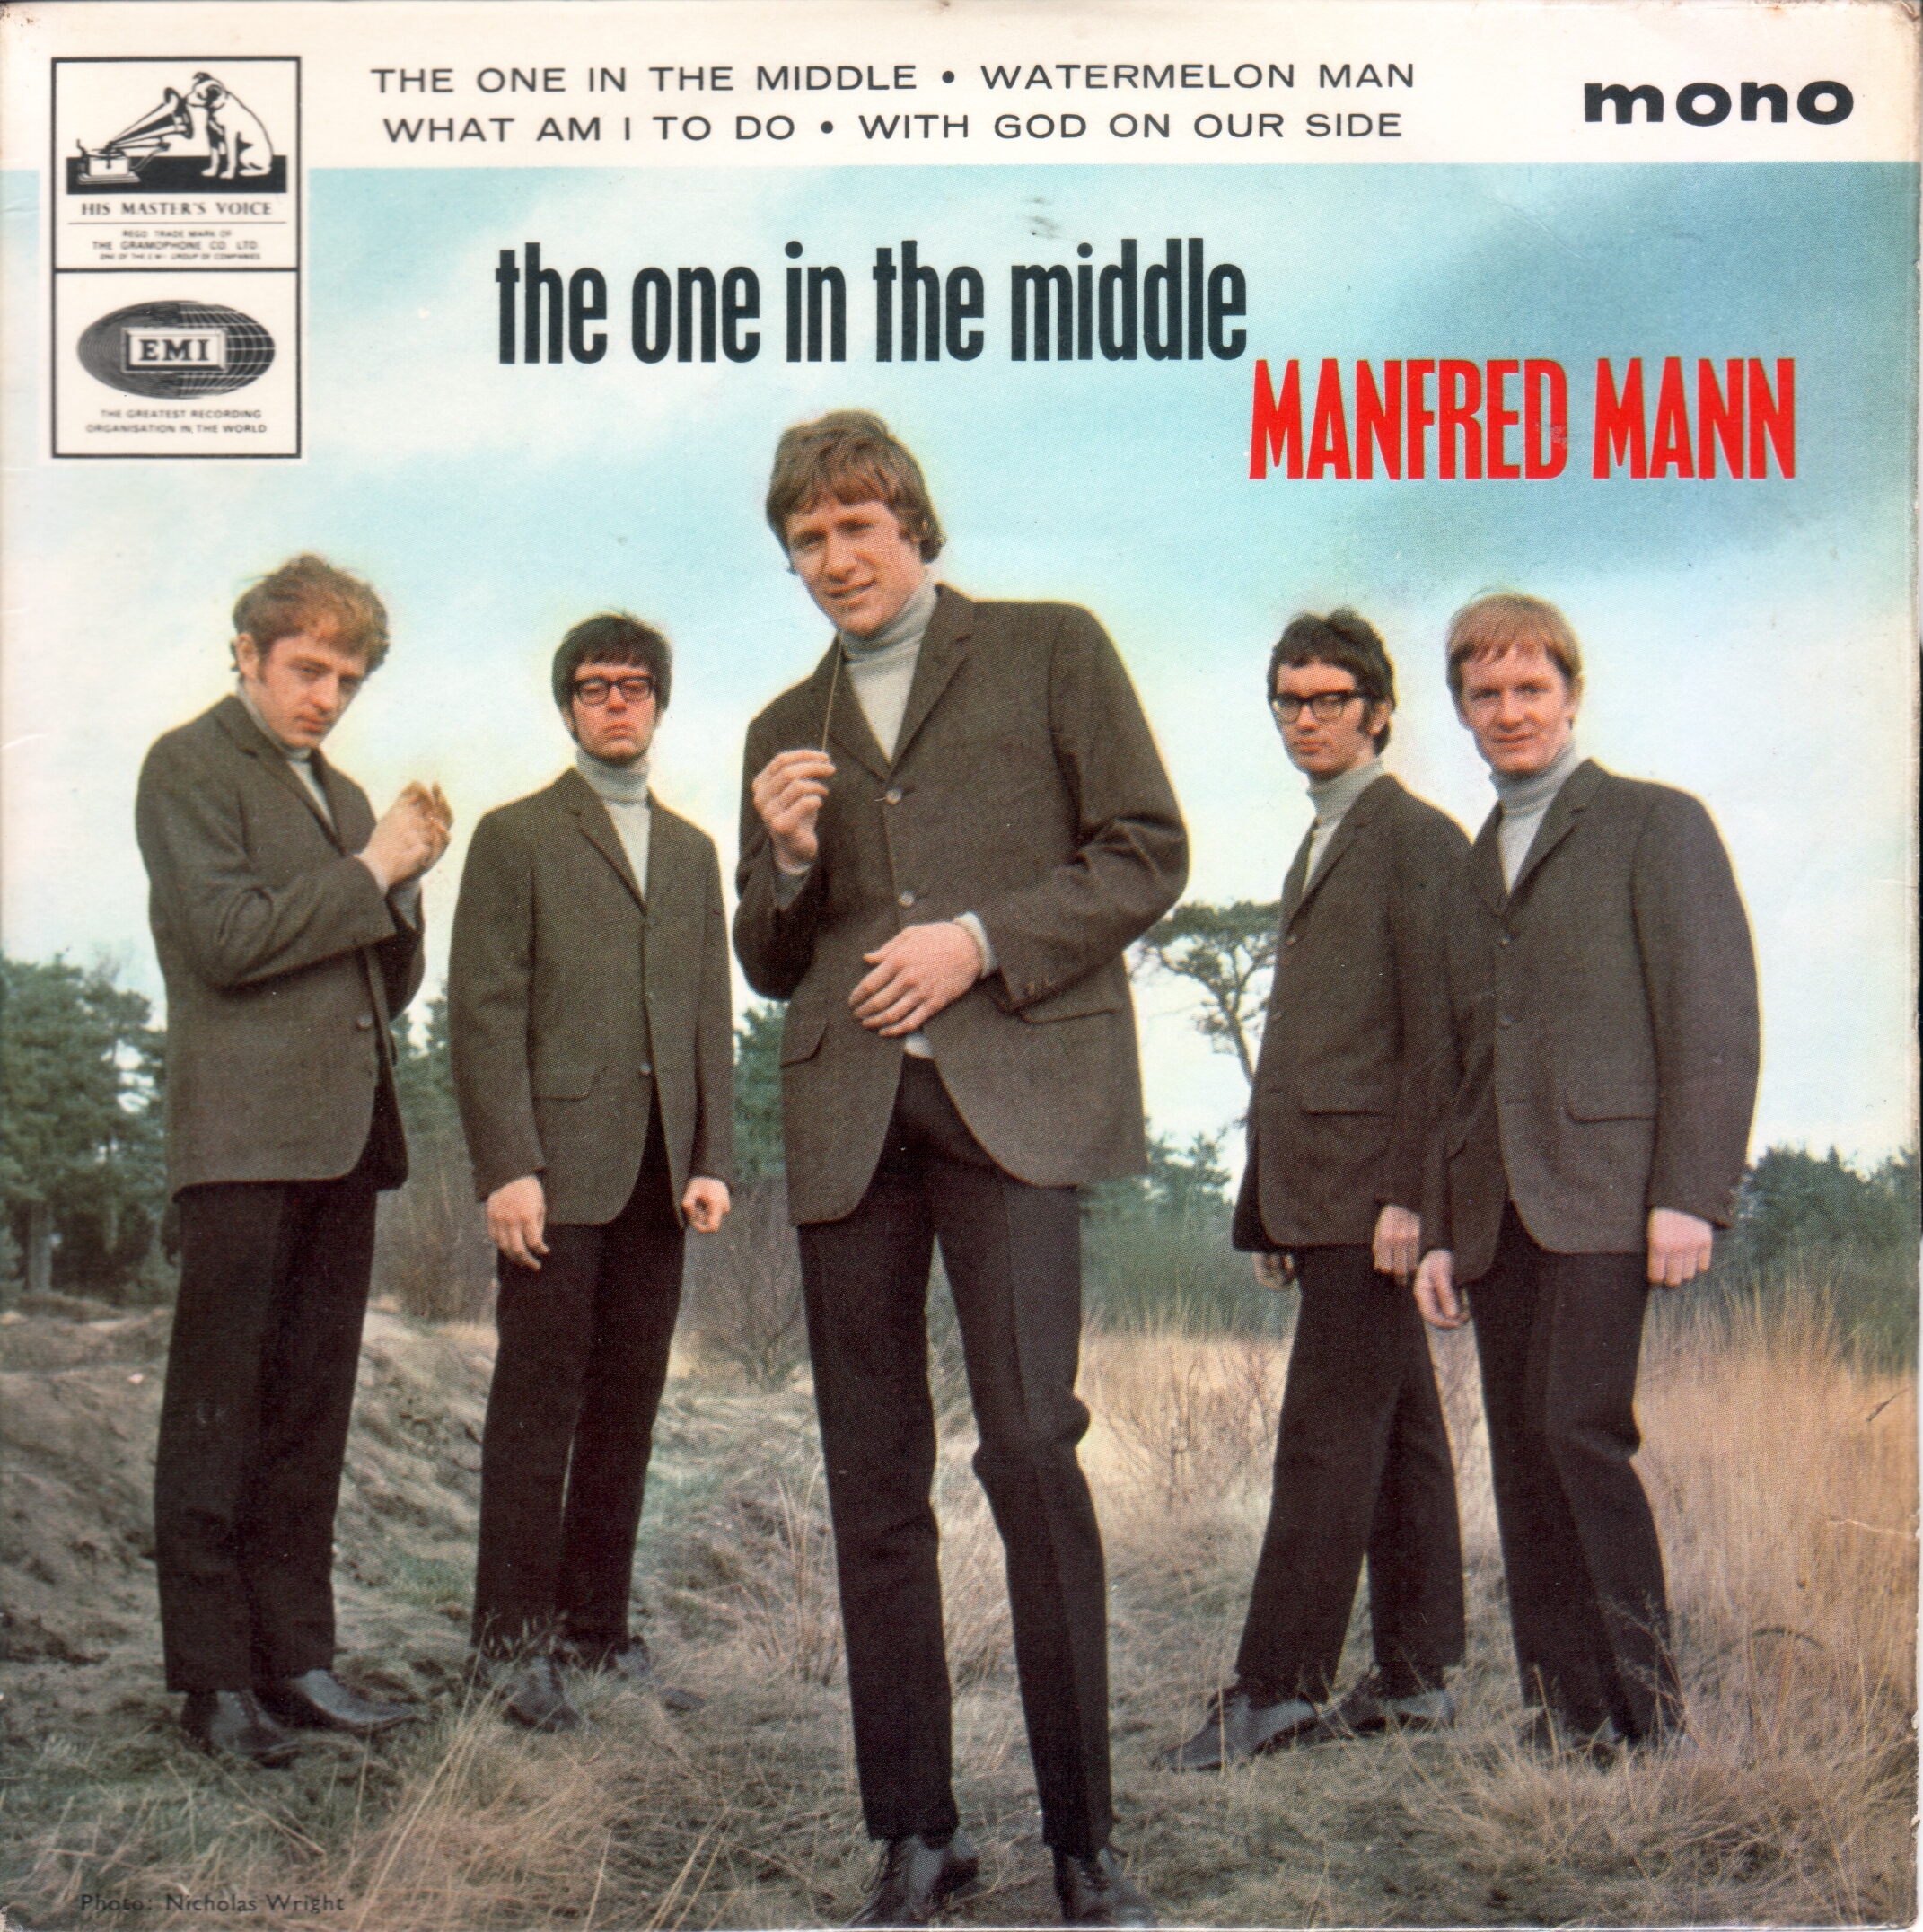 Manfred Mann - The one in the middle EP (1965)